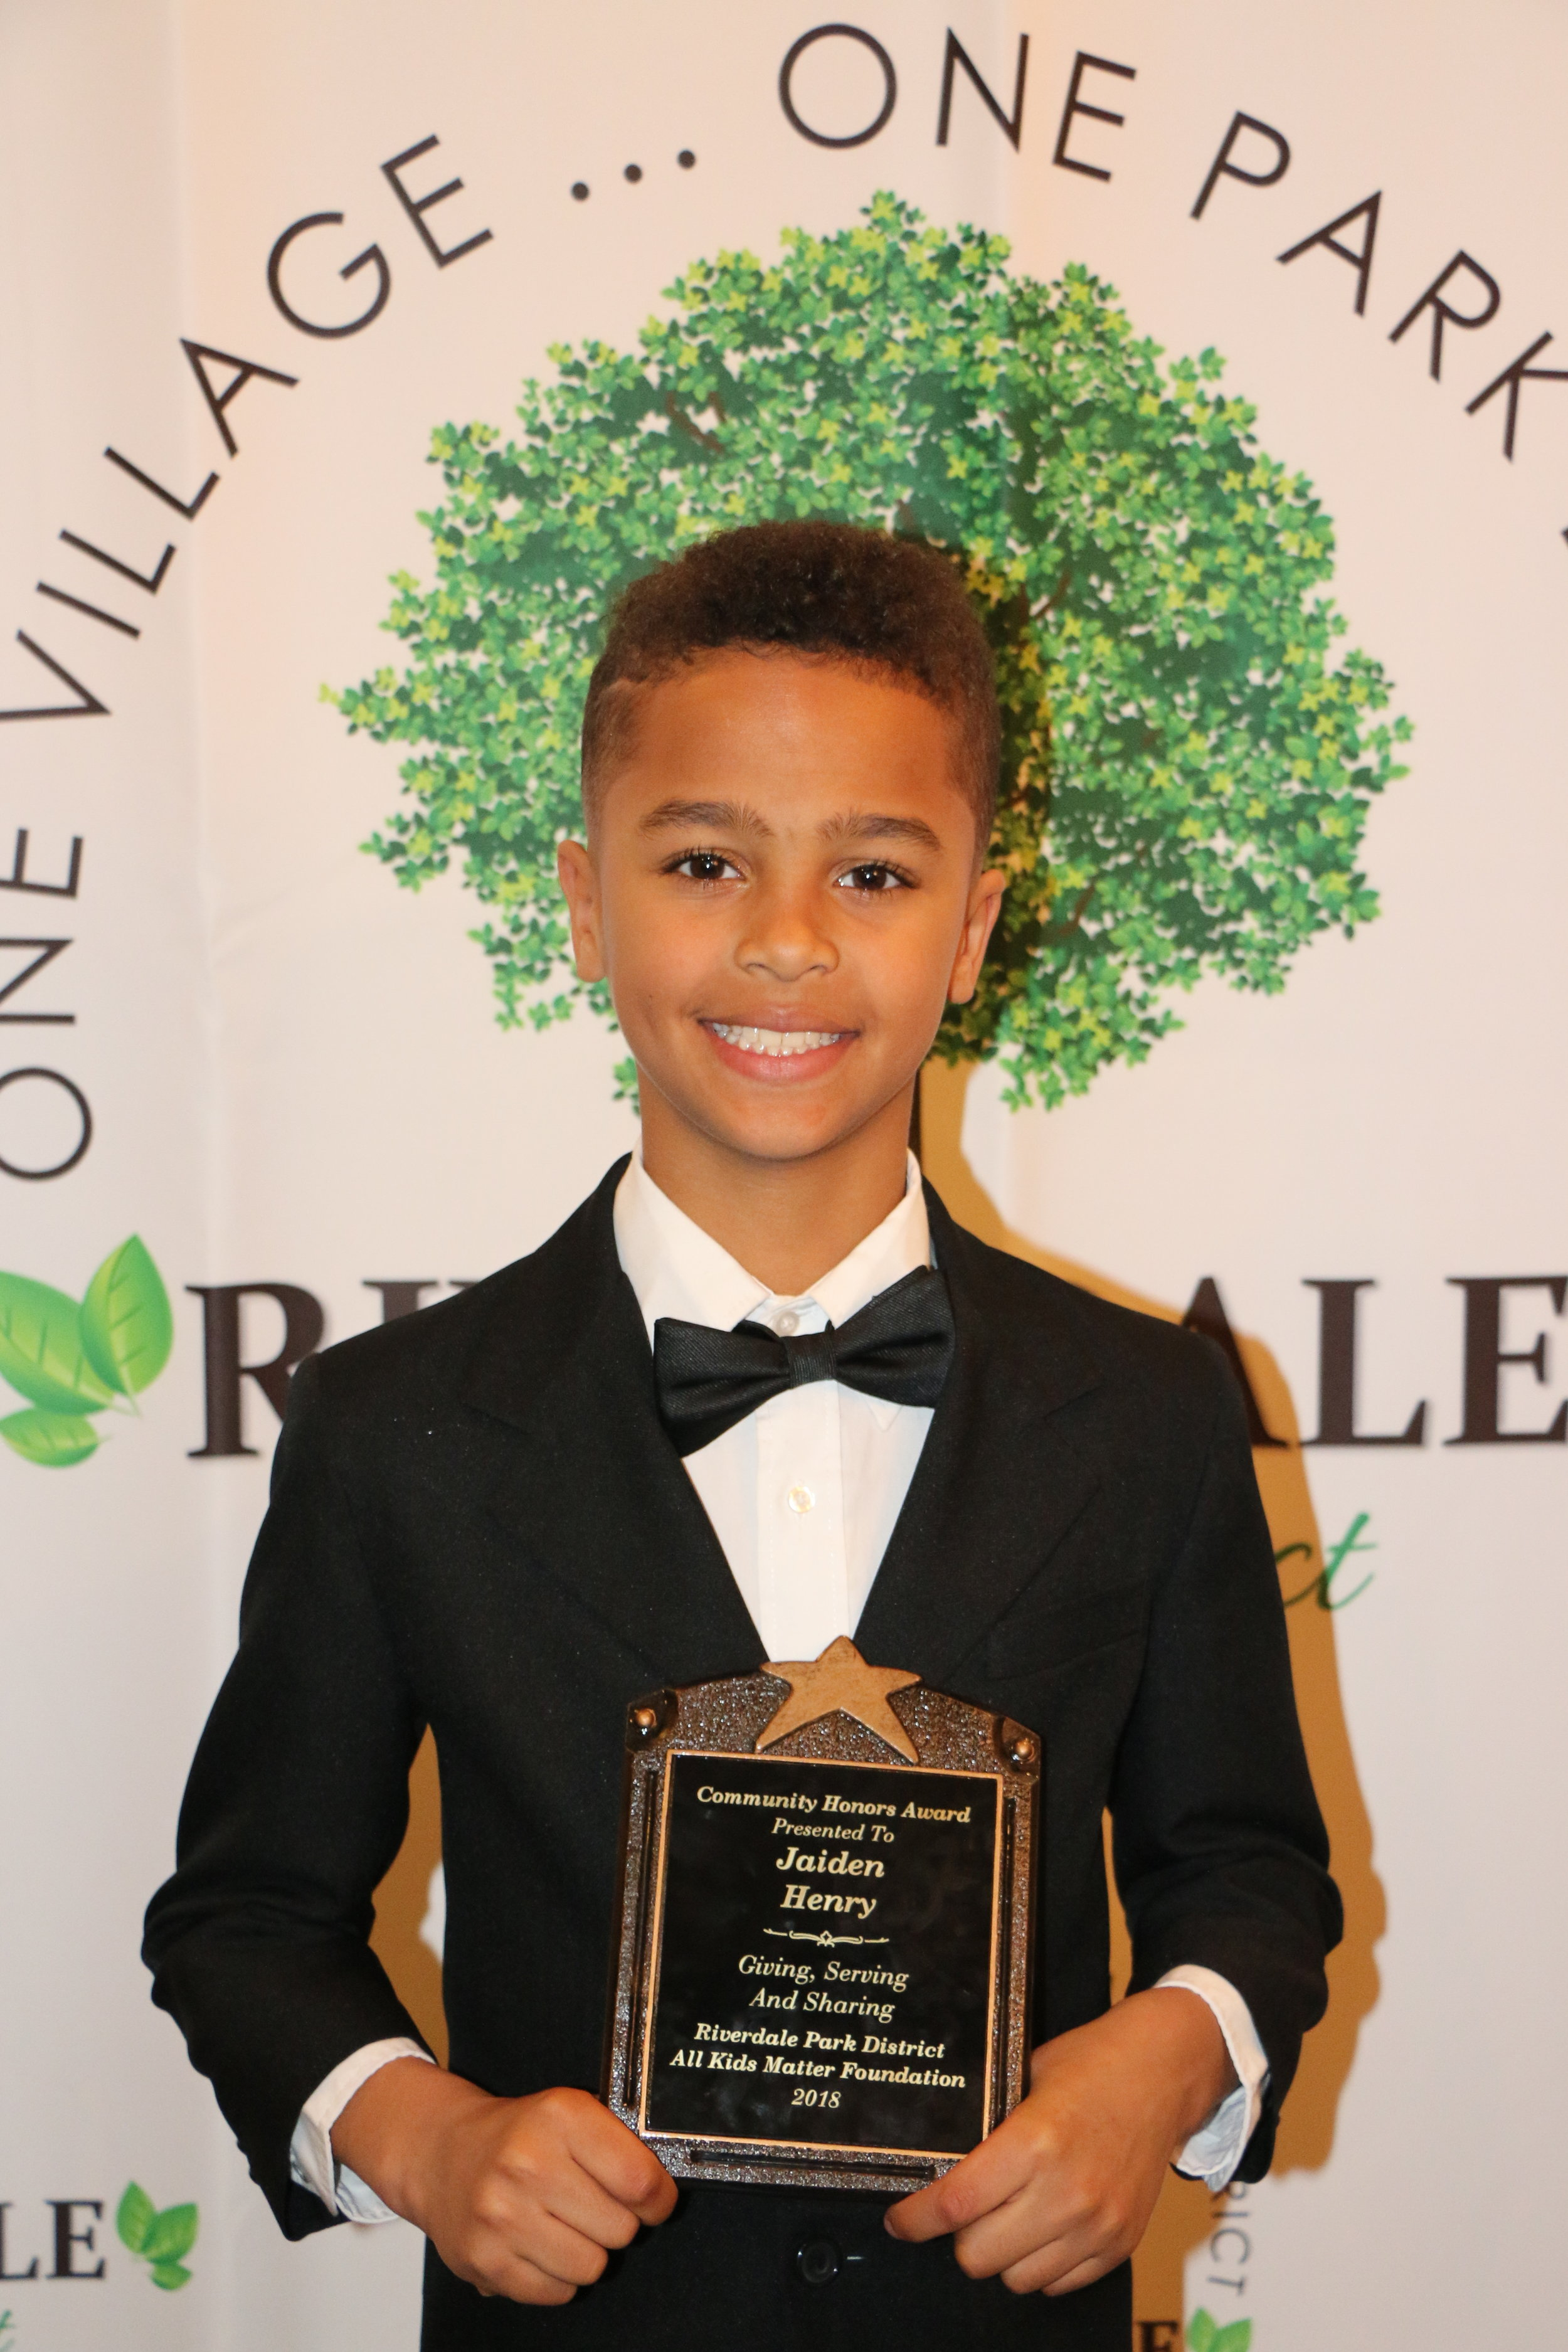 Community Honors Award - RiverDale Park District and All Kids Matter Foundation honor Jaiden with the Giving, Serving and Sharing award.